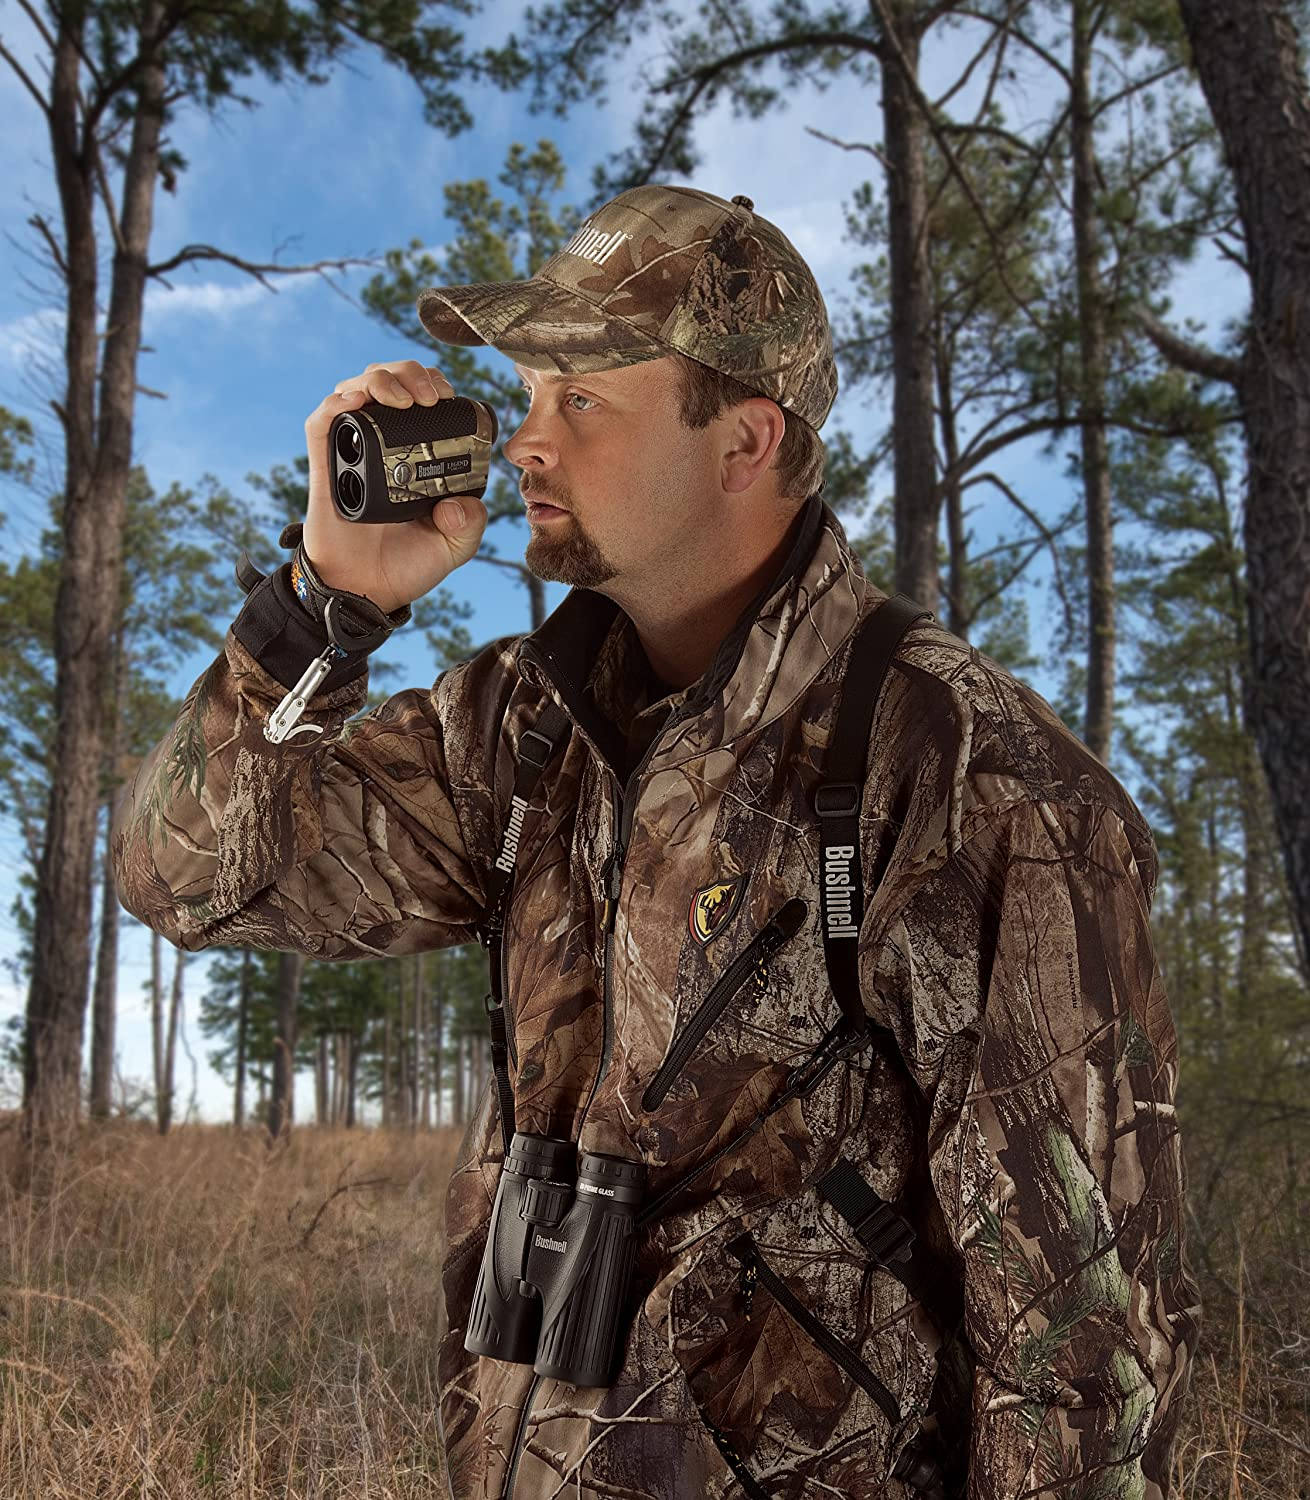 Bushnell Legend 1200 ARC Bow and Rifle Modes Laser Rangefinder, Realtree AP Camo